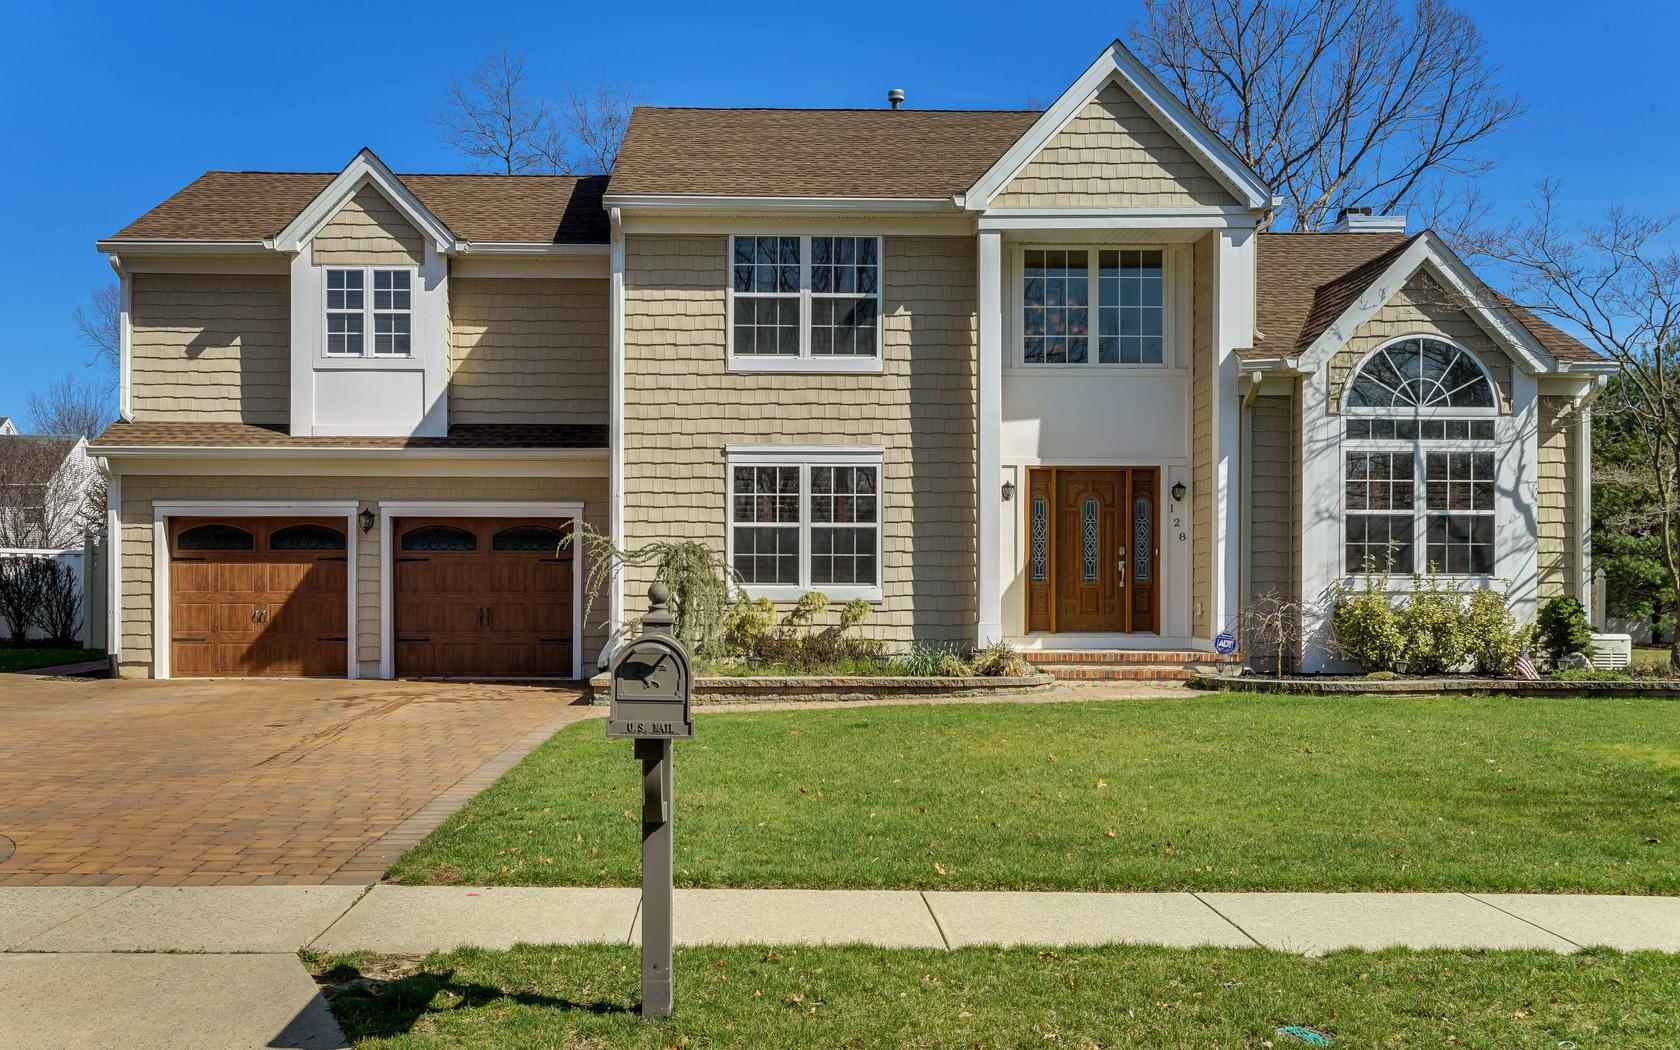 Single Family Home for Sale at Grande Woodlands! 128 Old Orchard Road Toms River, New Jersey 08755 United States